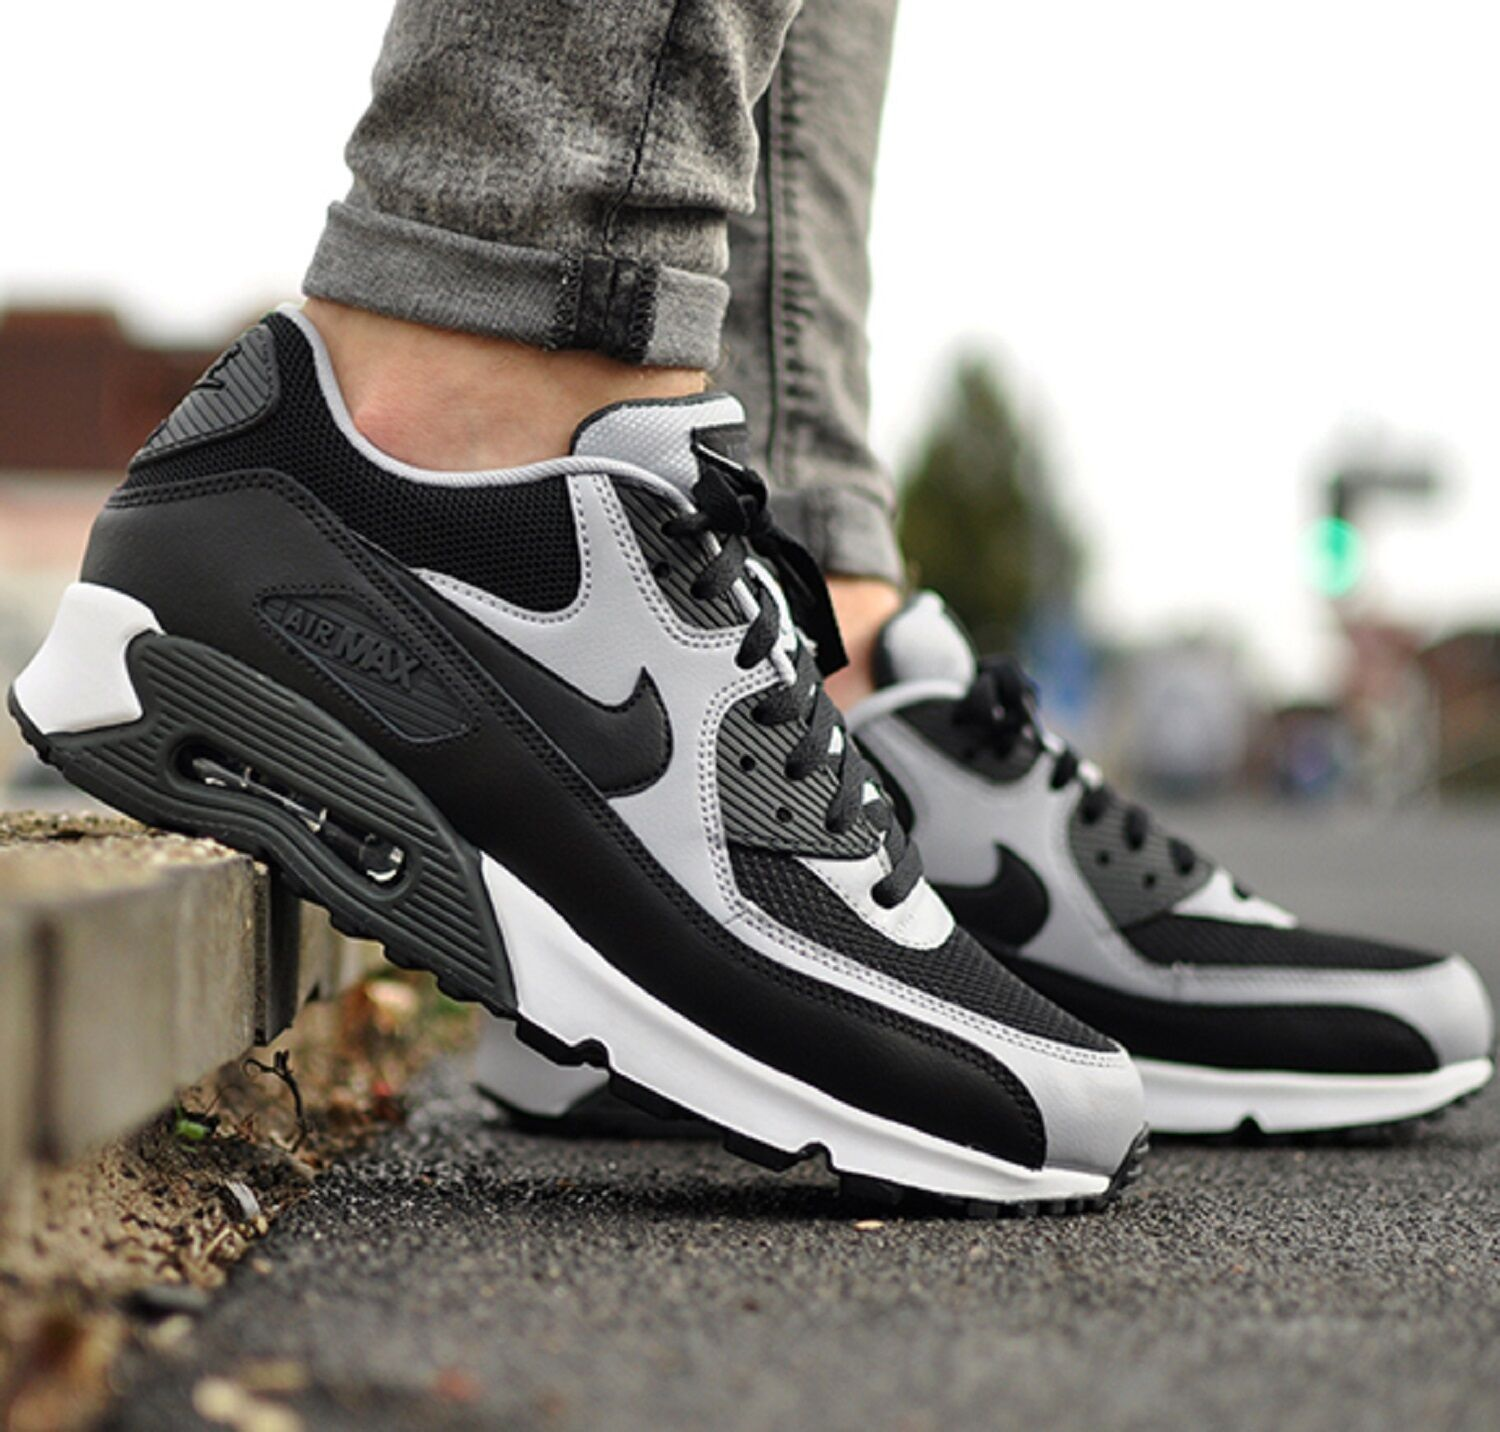 NIKE AIR MAX 90 LIFESTYLE ESSENTIAL Hommes RUNNING Chaussure LIFESTYLE 90 COMFY SNEAKER 8b8cb4